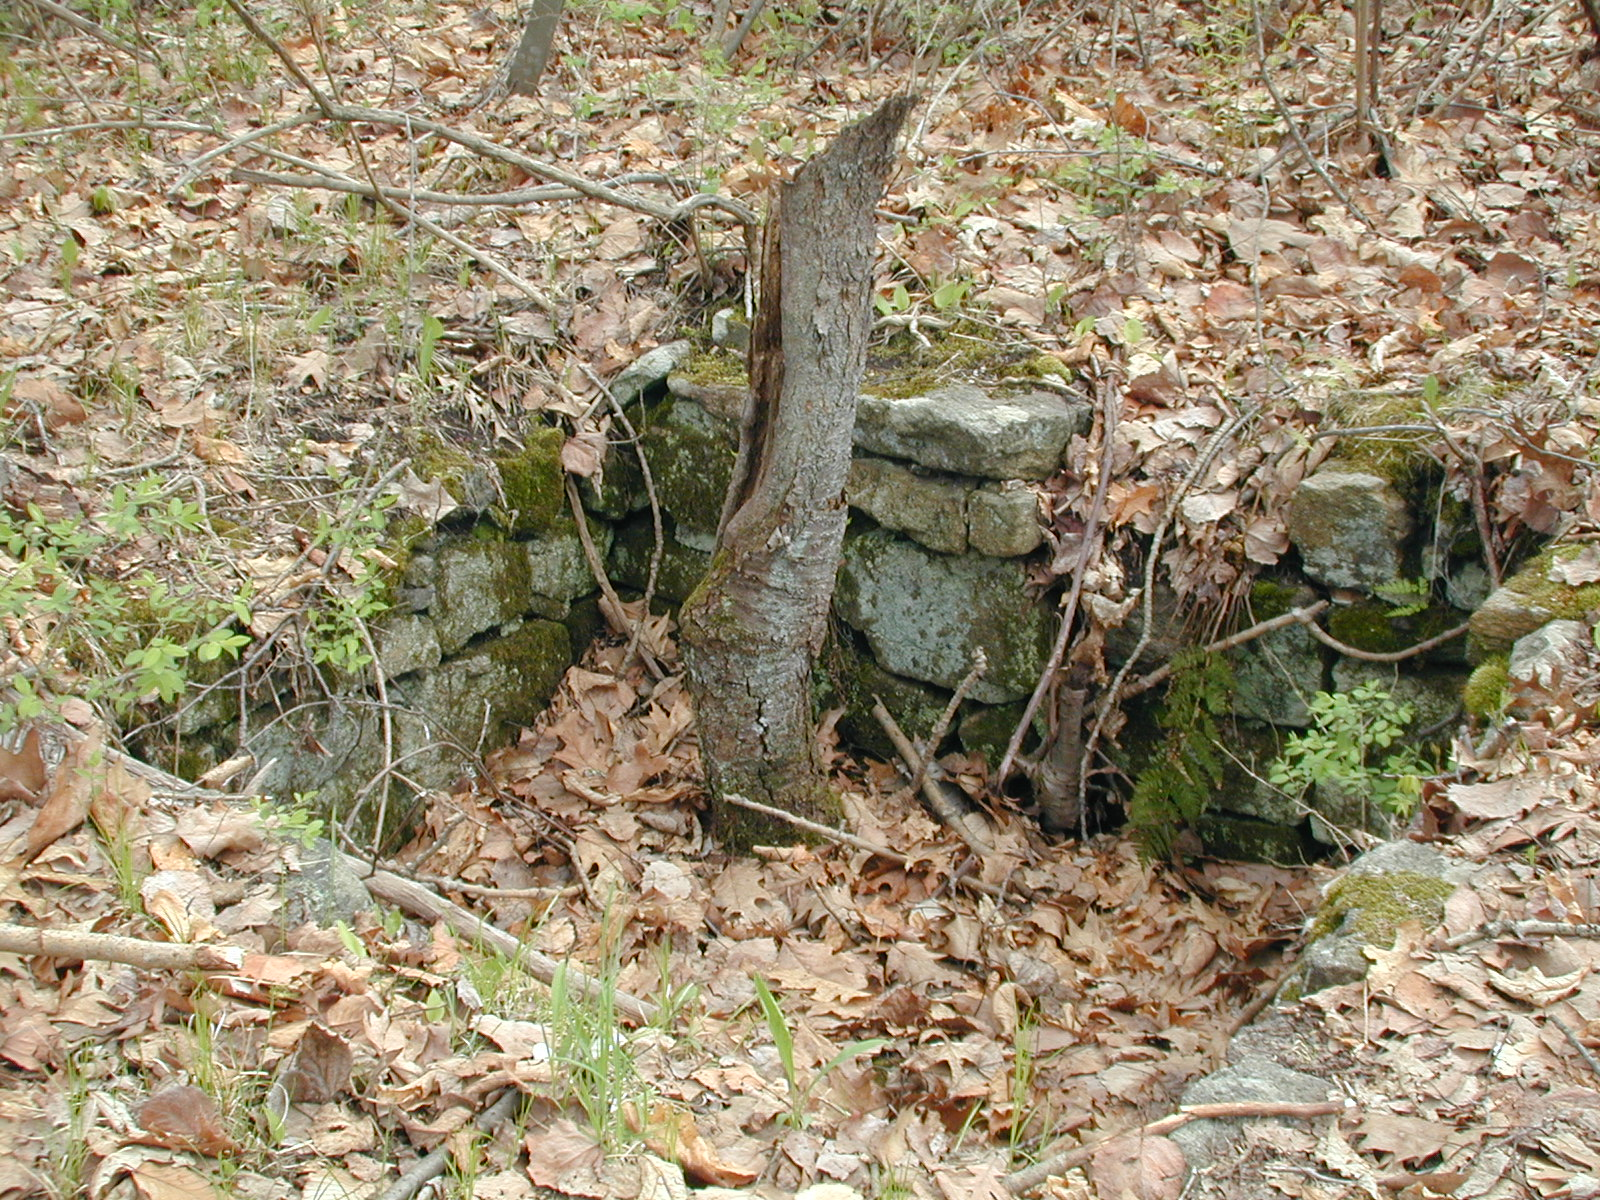 Stone-lined pit a Chester Furnace